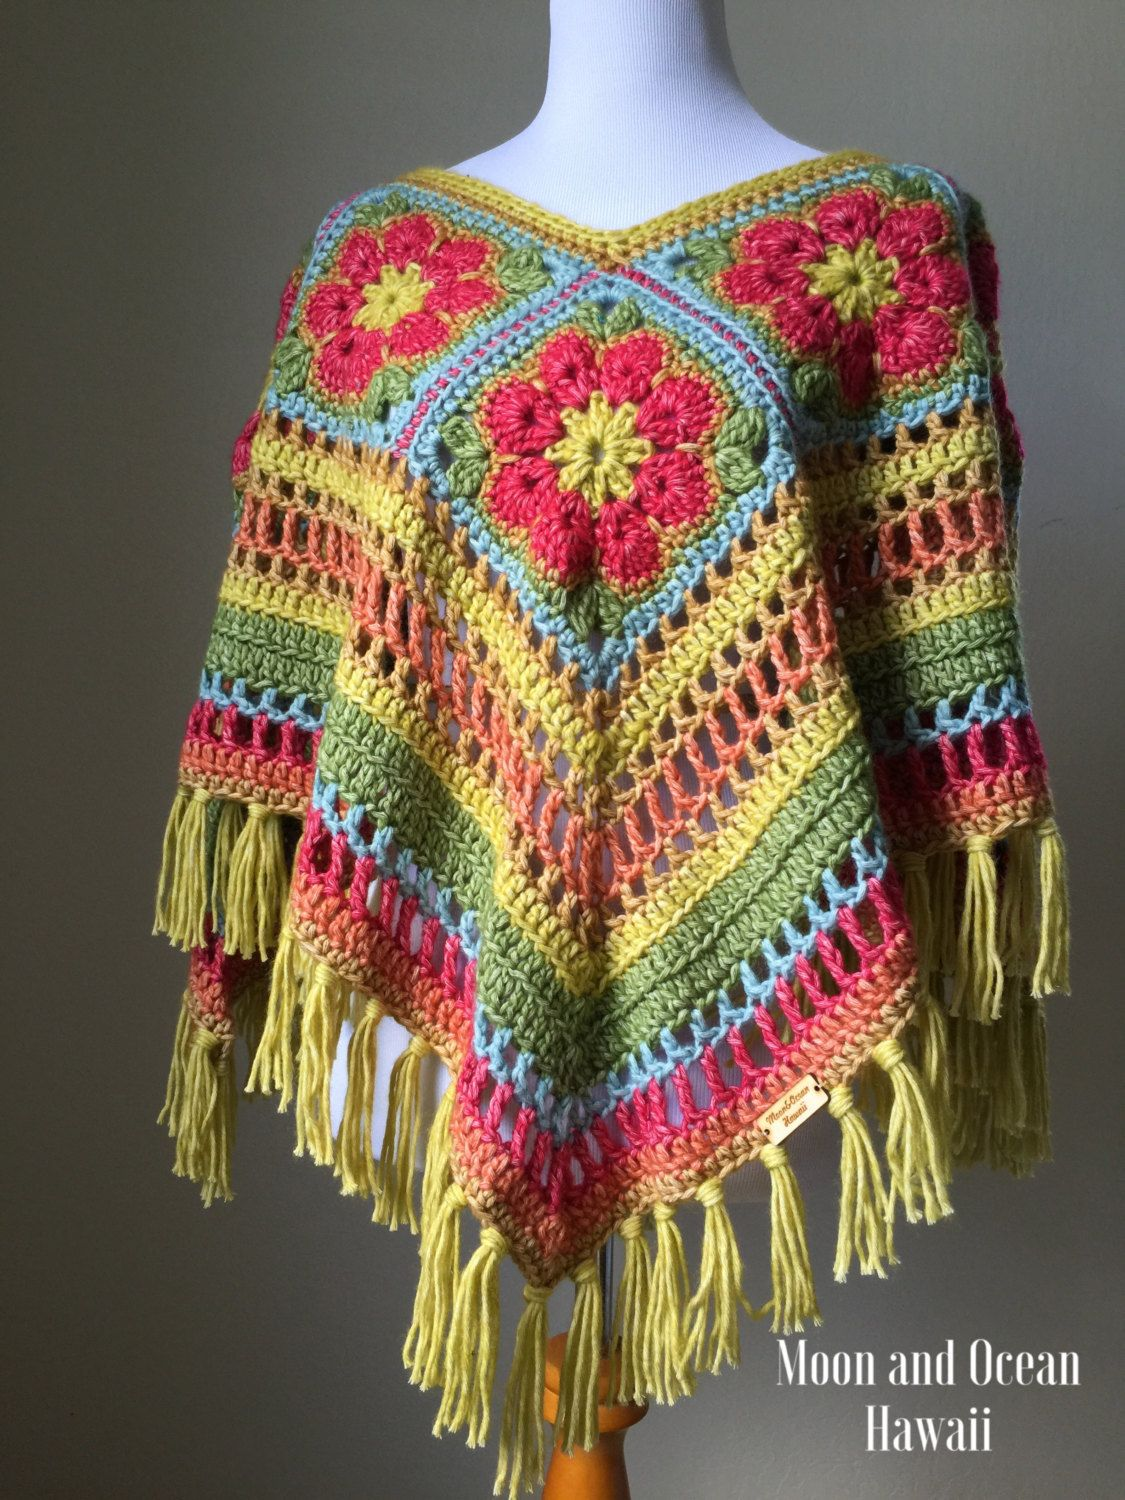 Crochet poncho by moonandoceanhawaii on Etsy | ponchos crochet ...